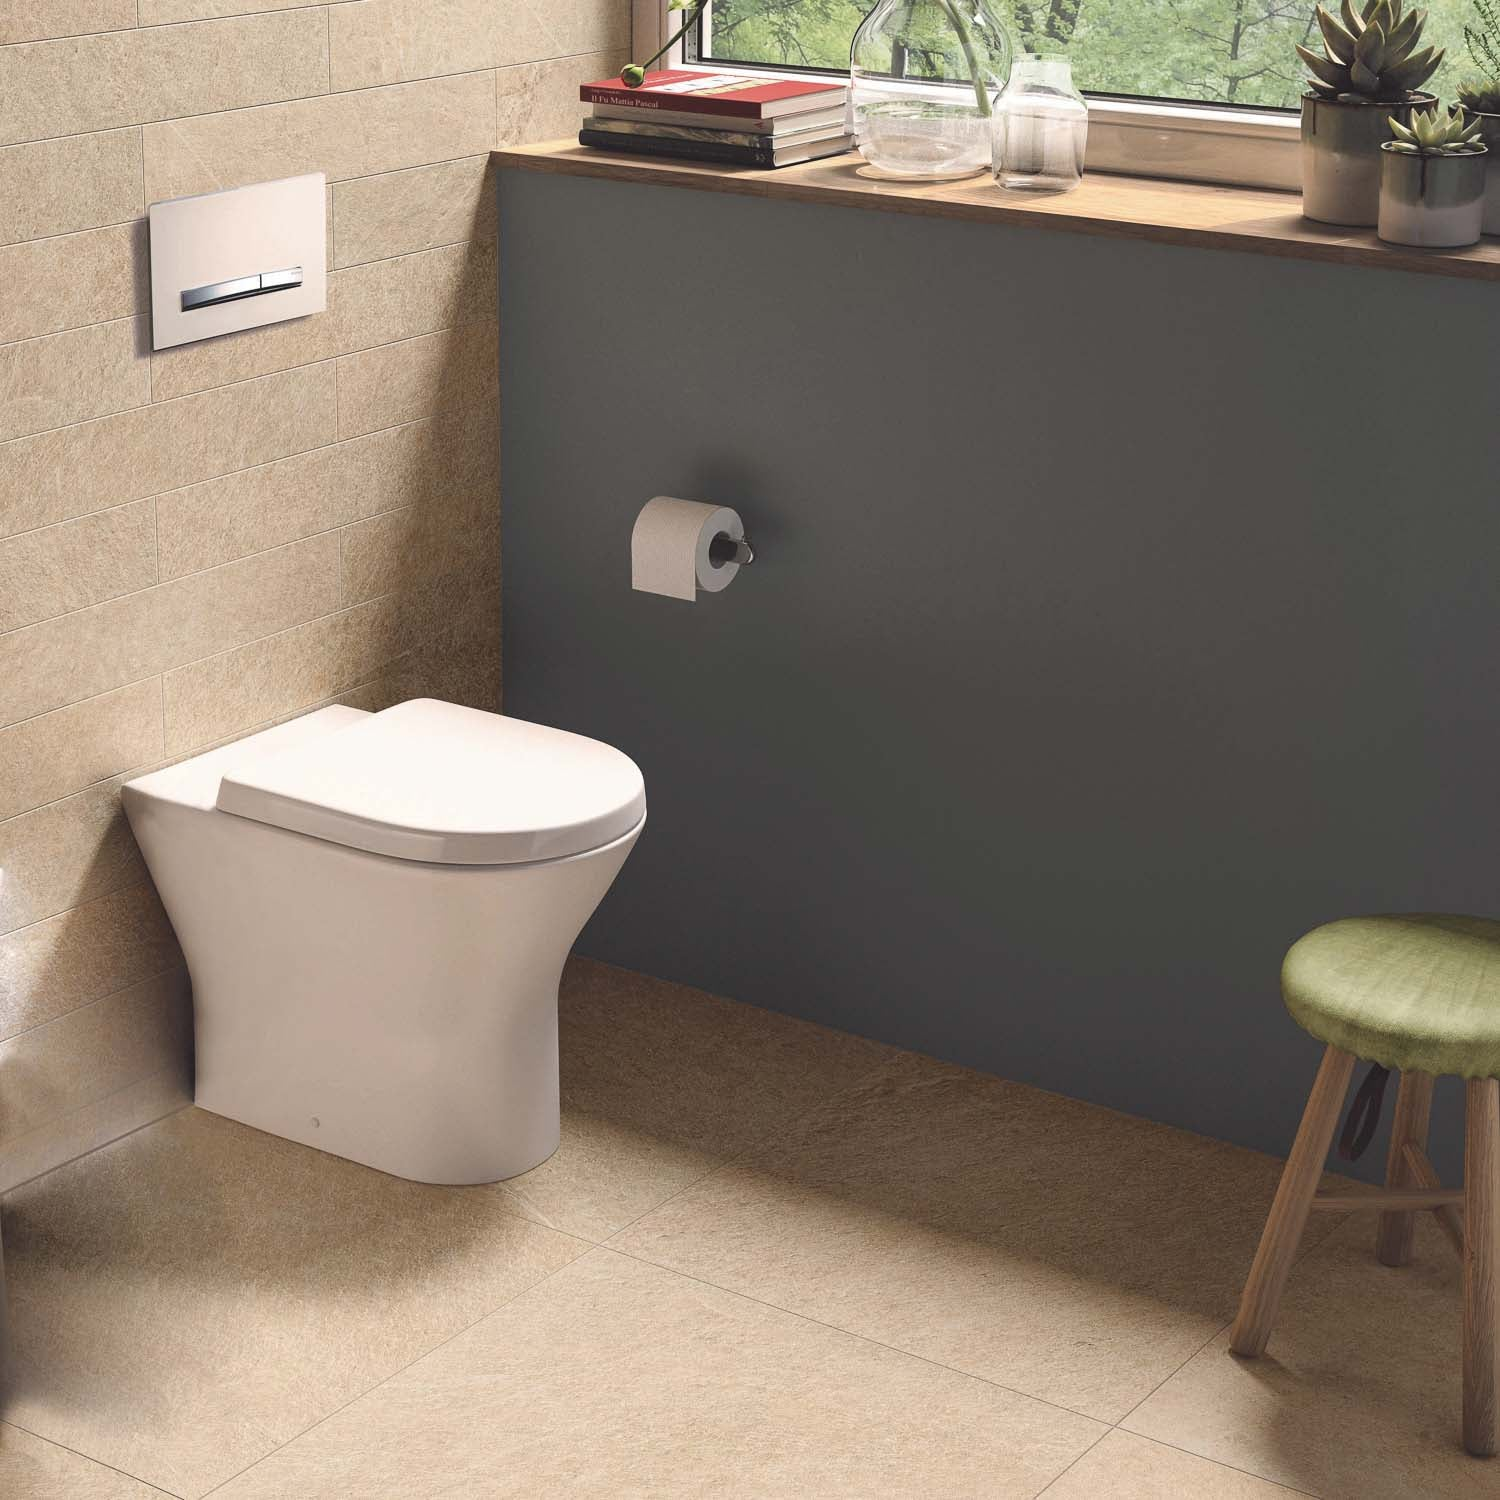 450mm Vesta Comfort Height Back to Wall Toilet with a seat and cover lifestyle image